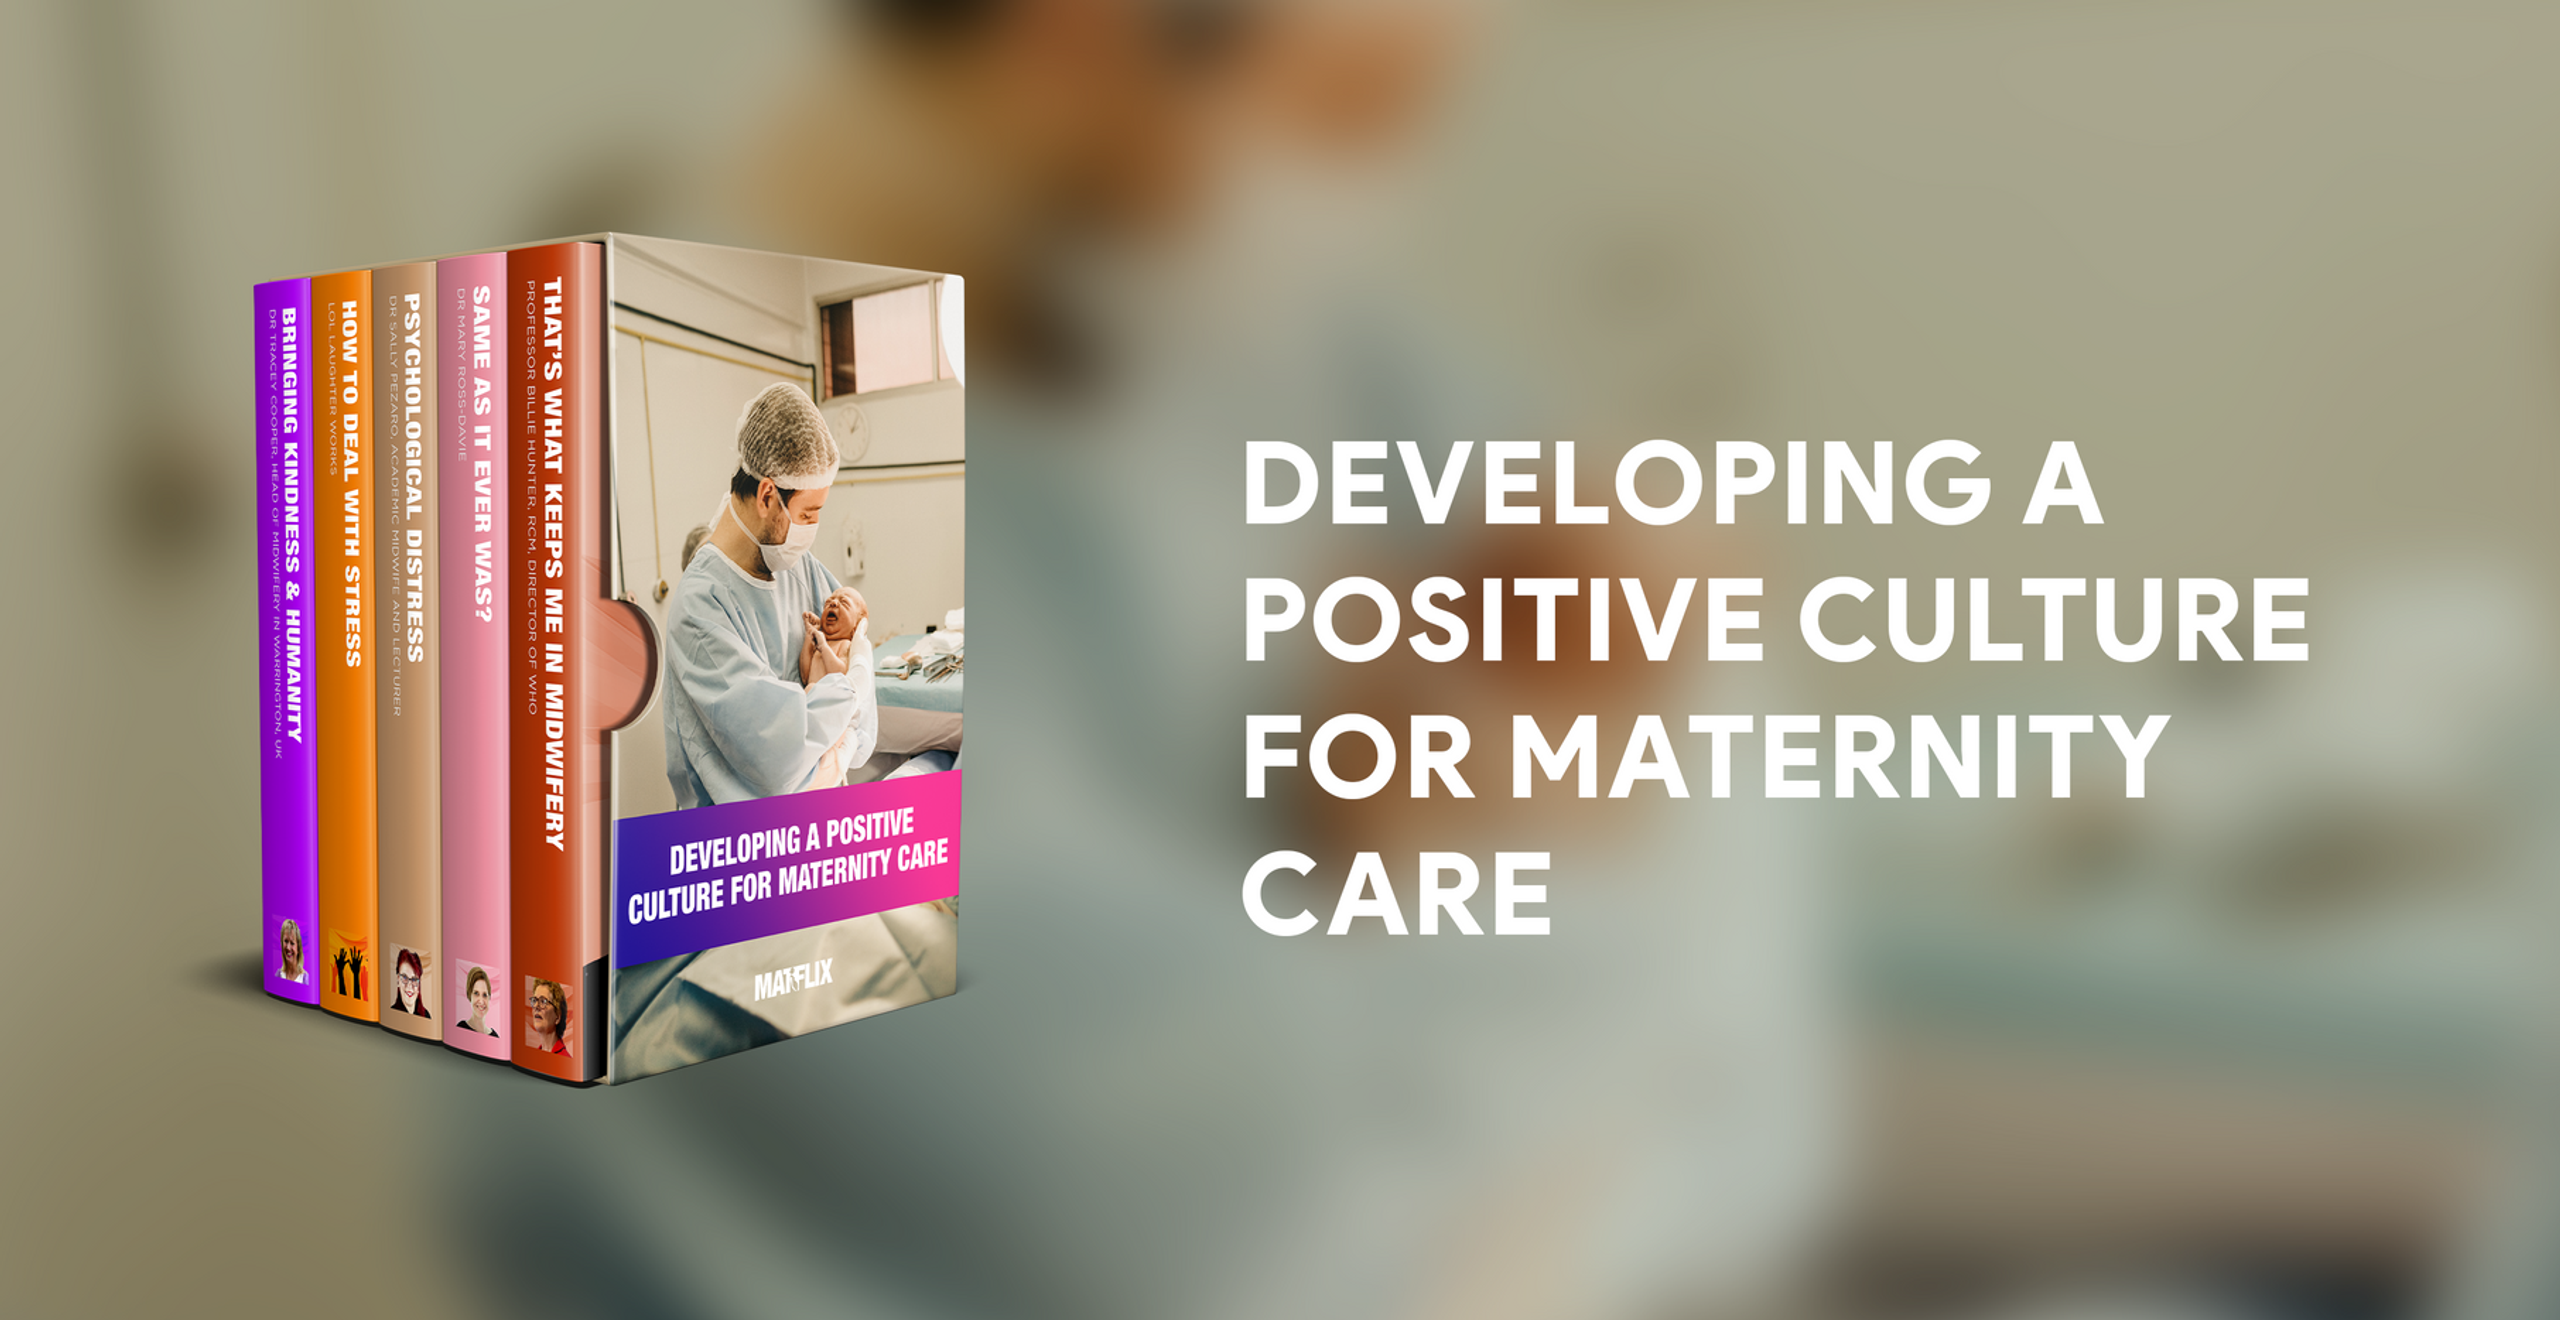 DEVELOPING A POSITIVE CULTURE FOR MATERNITY CARE